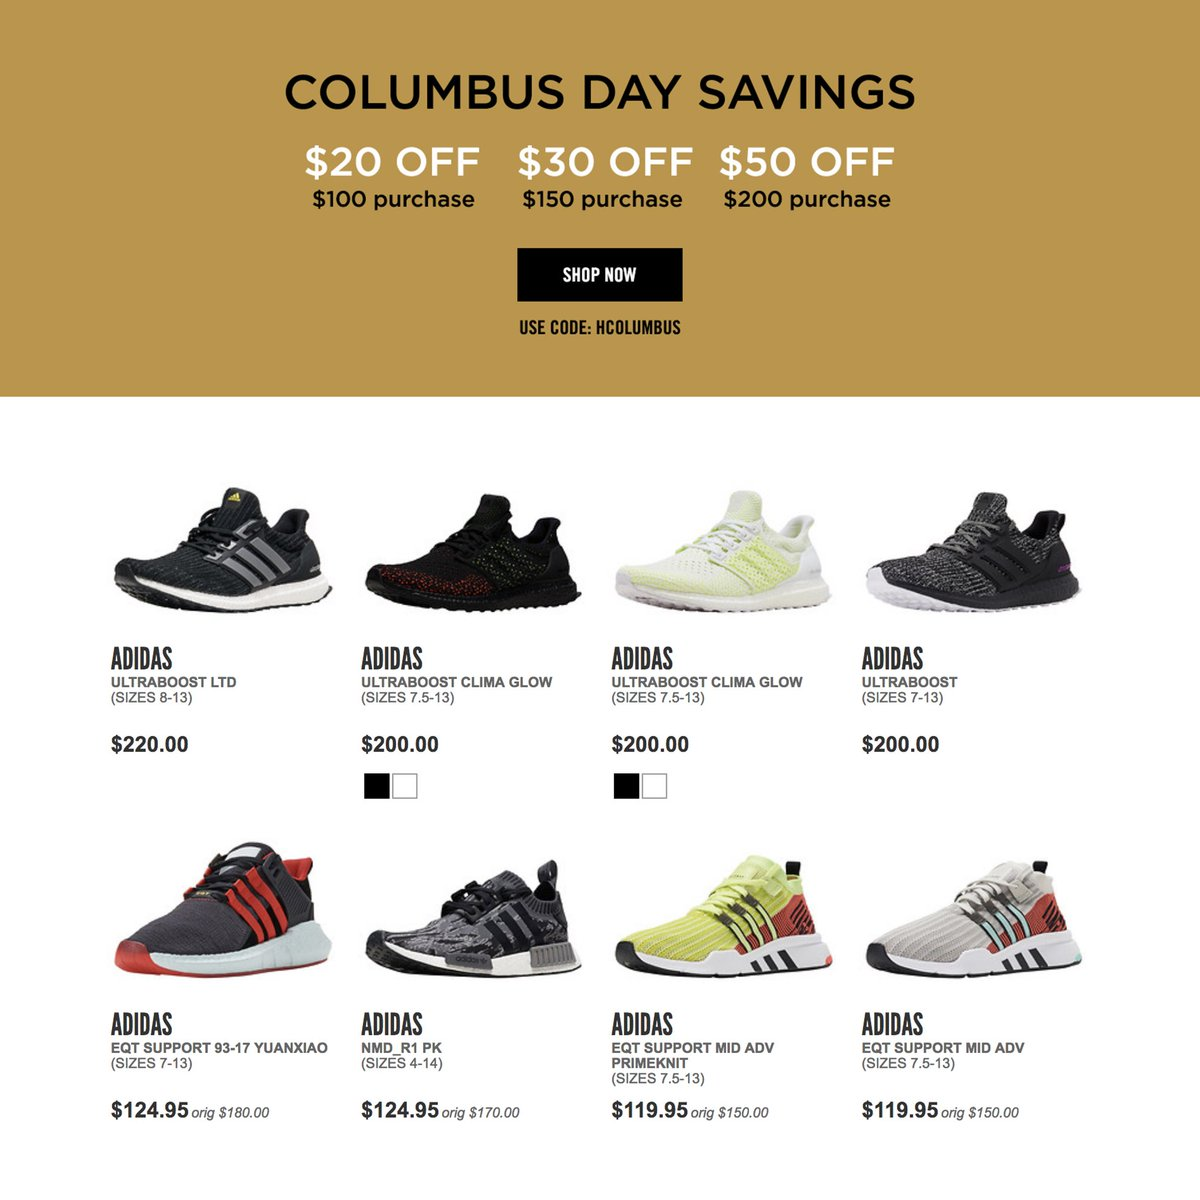 5e8b81e1d9aba ... discount code for adidas alerts on twitter columbus day sale on  jimmyjazz. 20 off 100